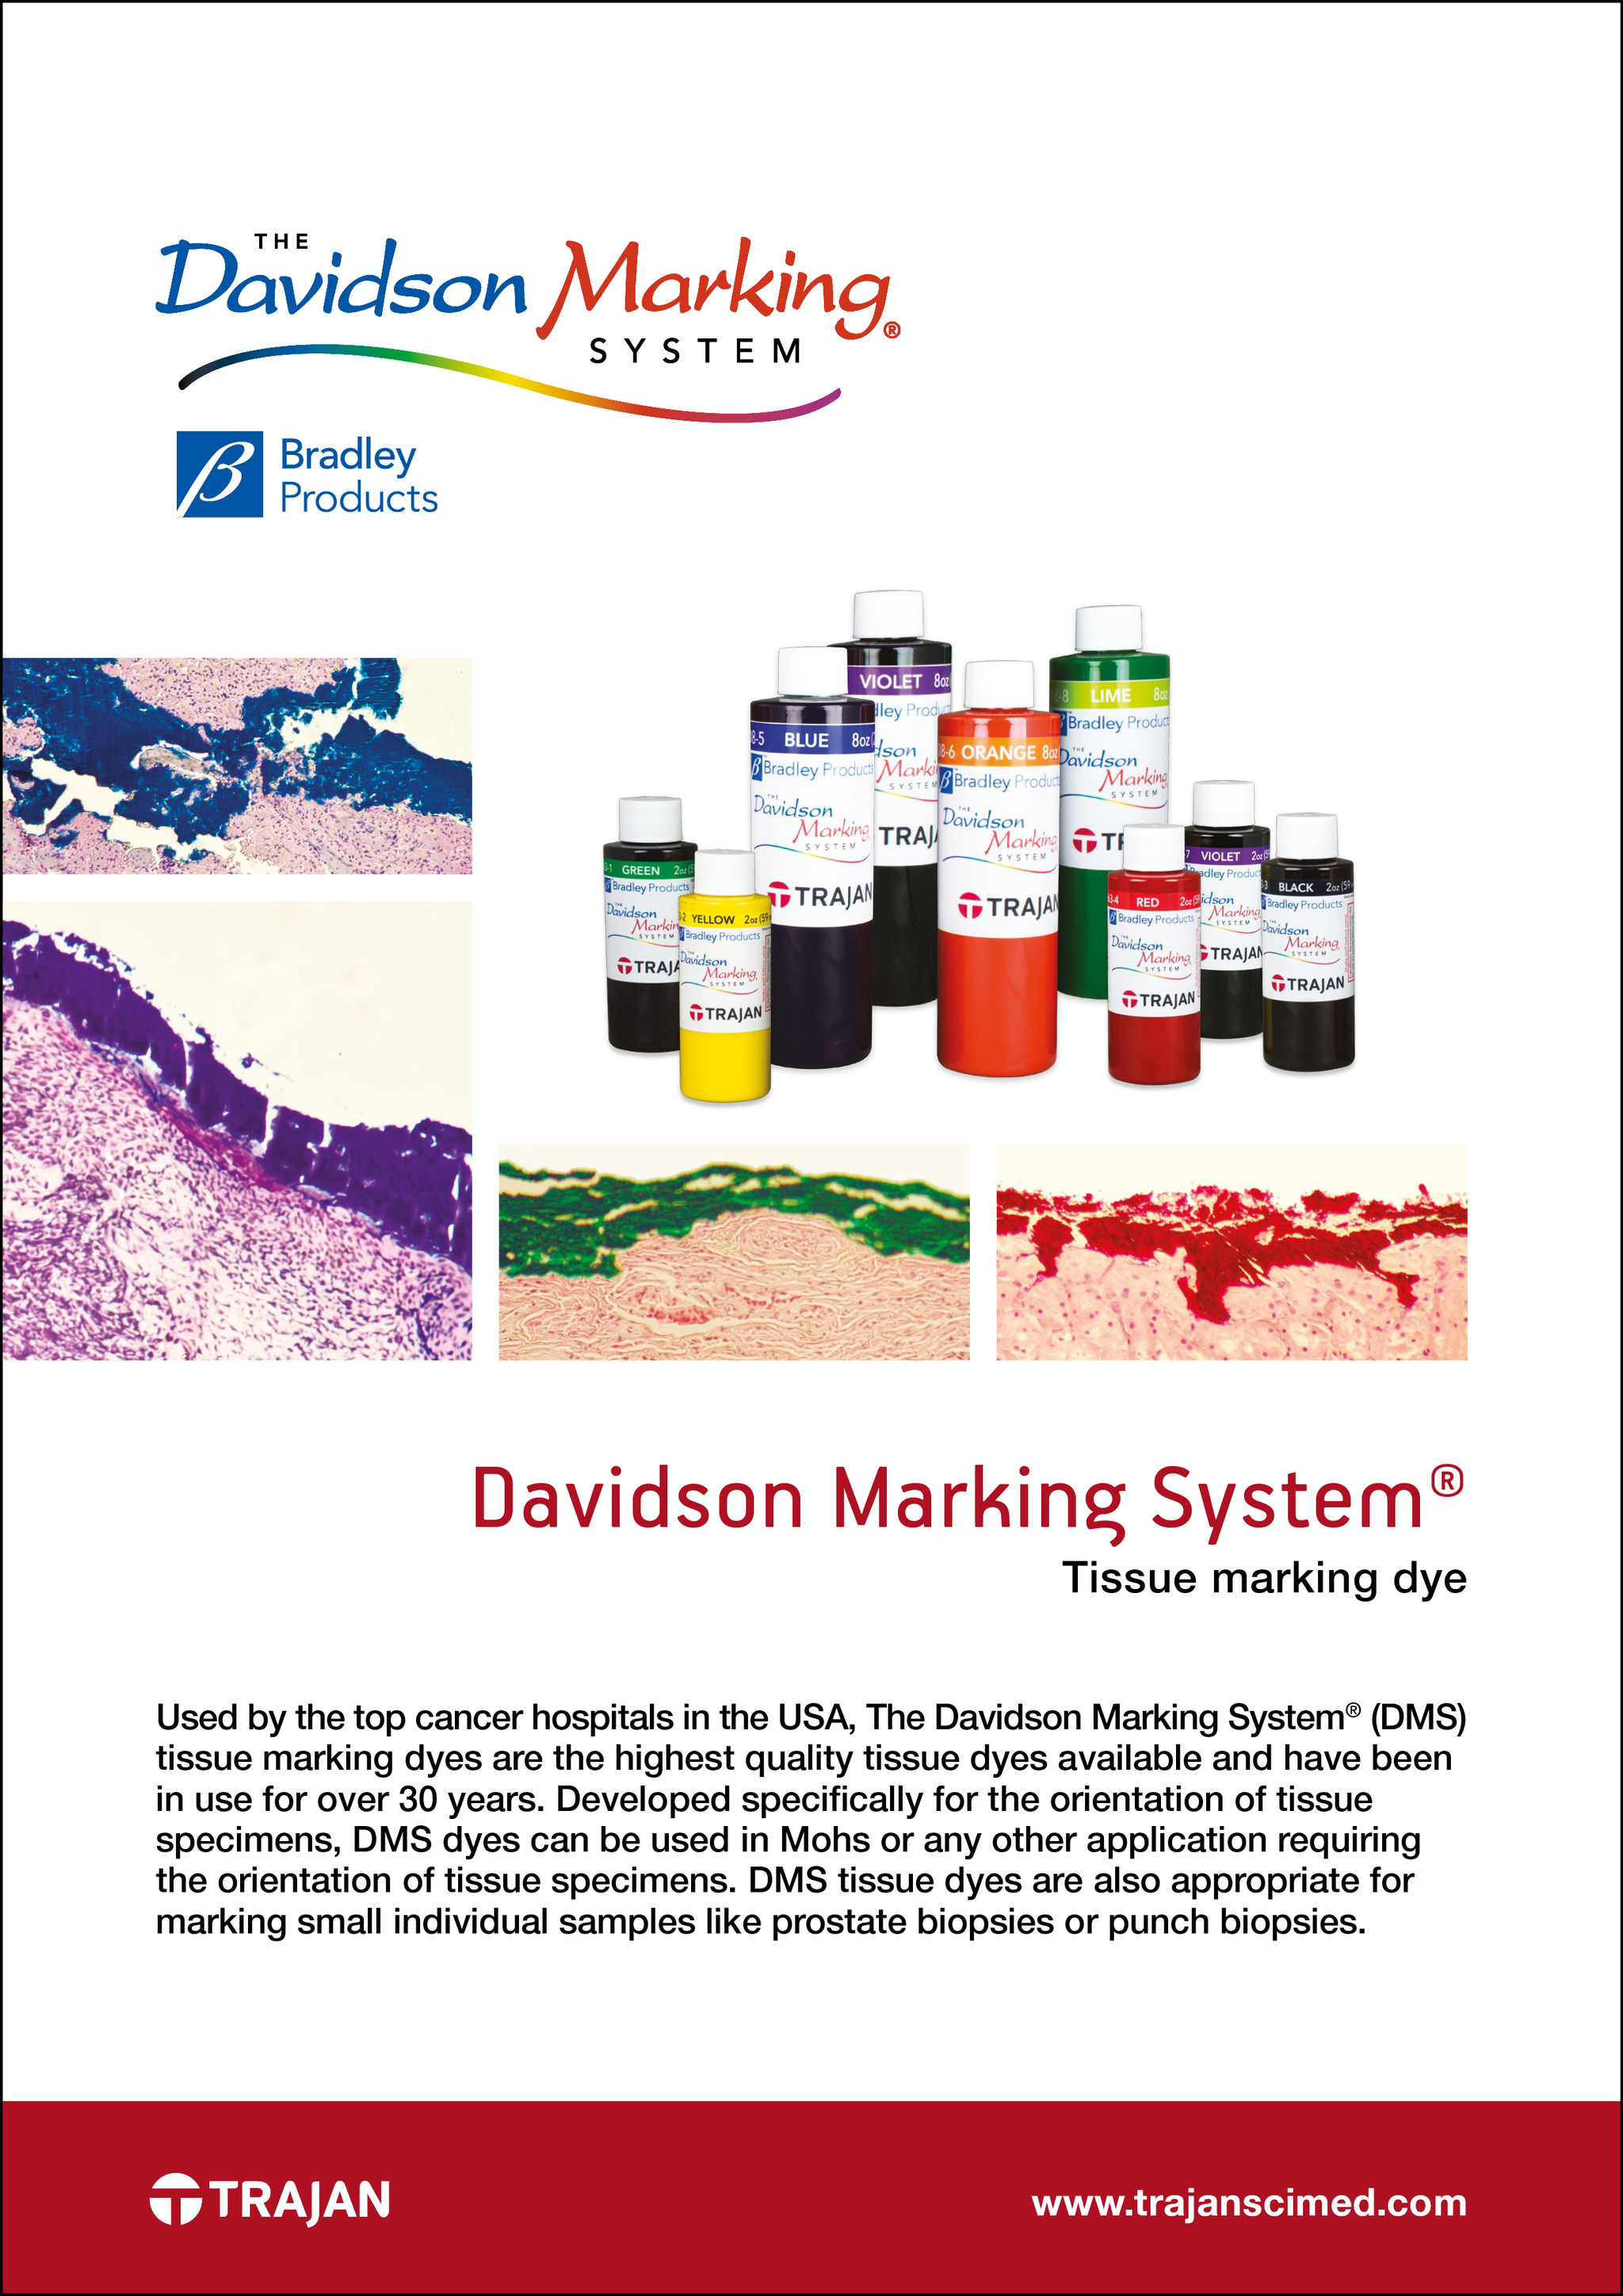 all tagged tissue marking dye trajan scientific and medical